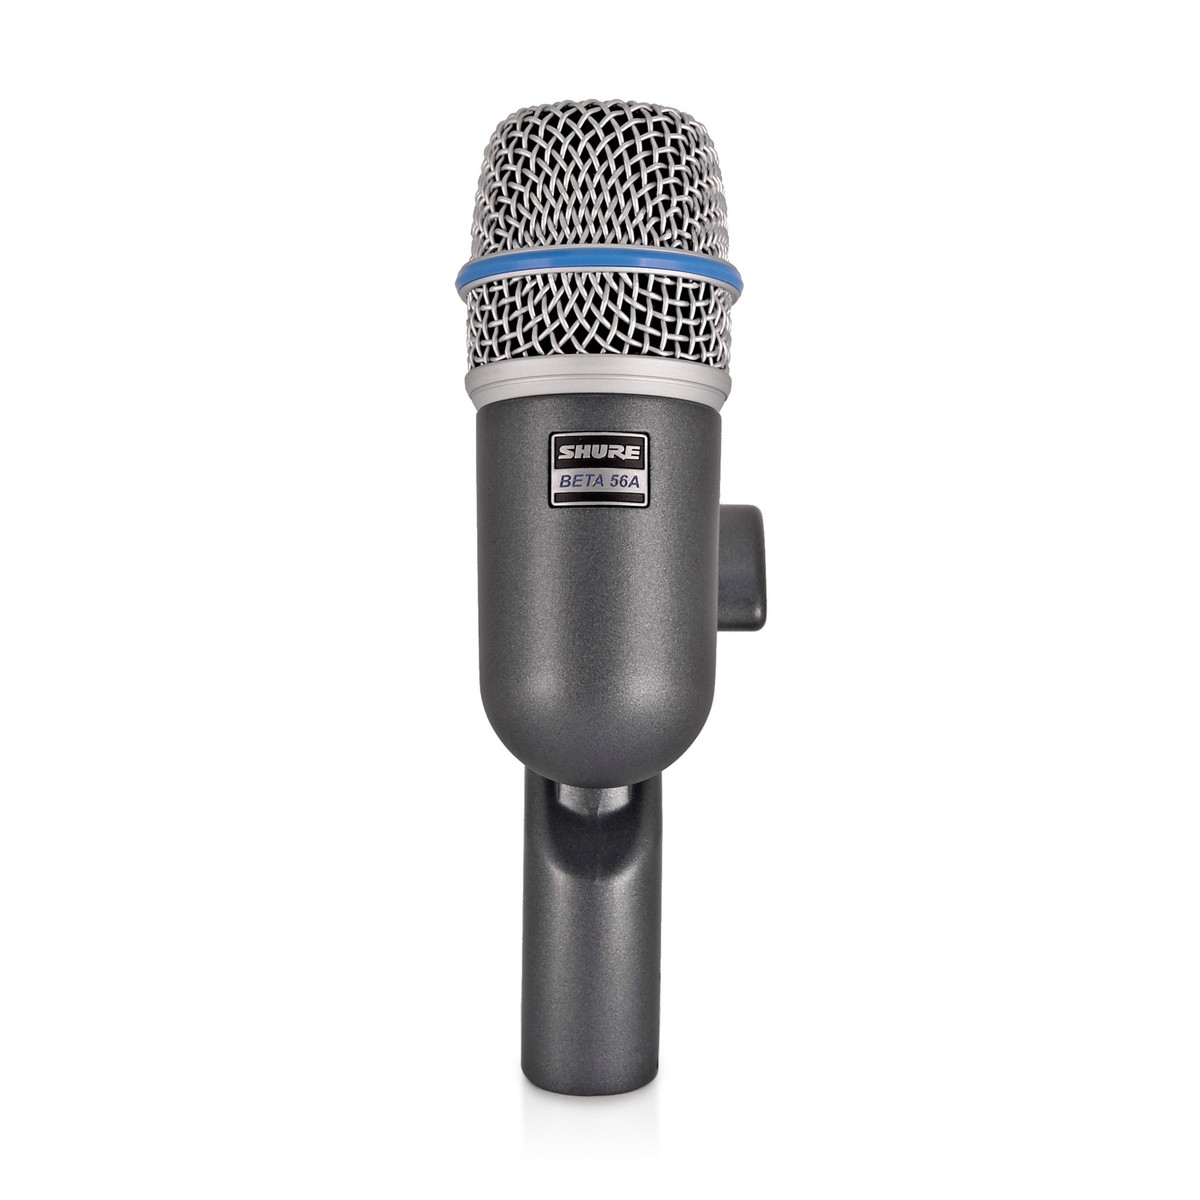 shure beta 56a snare tom microphone at gear4music. Black Bedroom Furniture Sets. Home Design Ideas